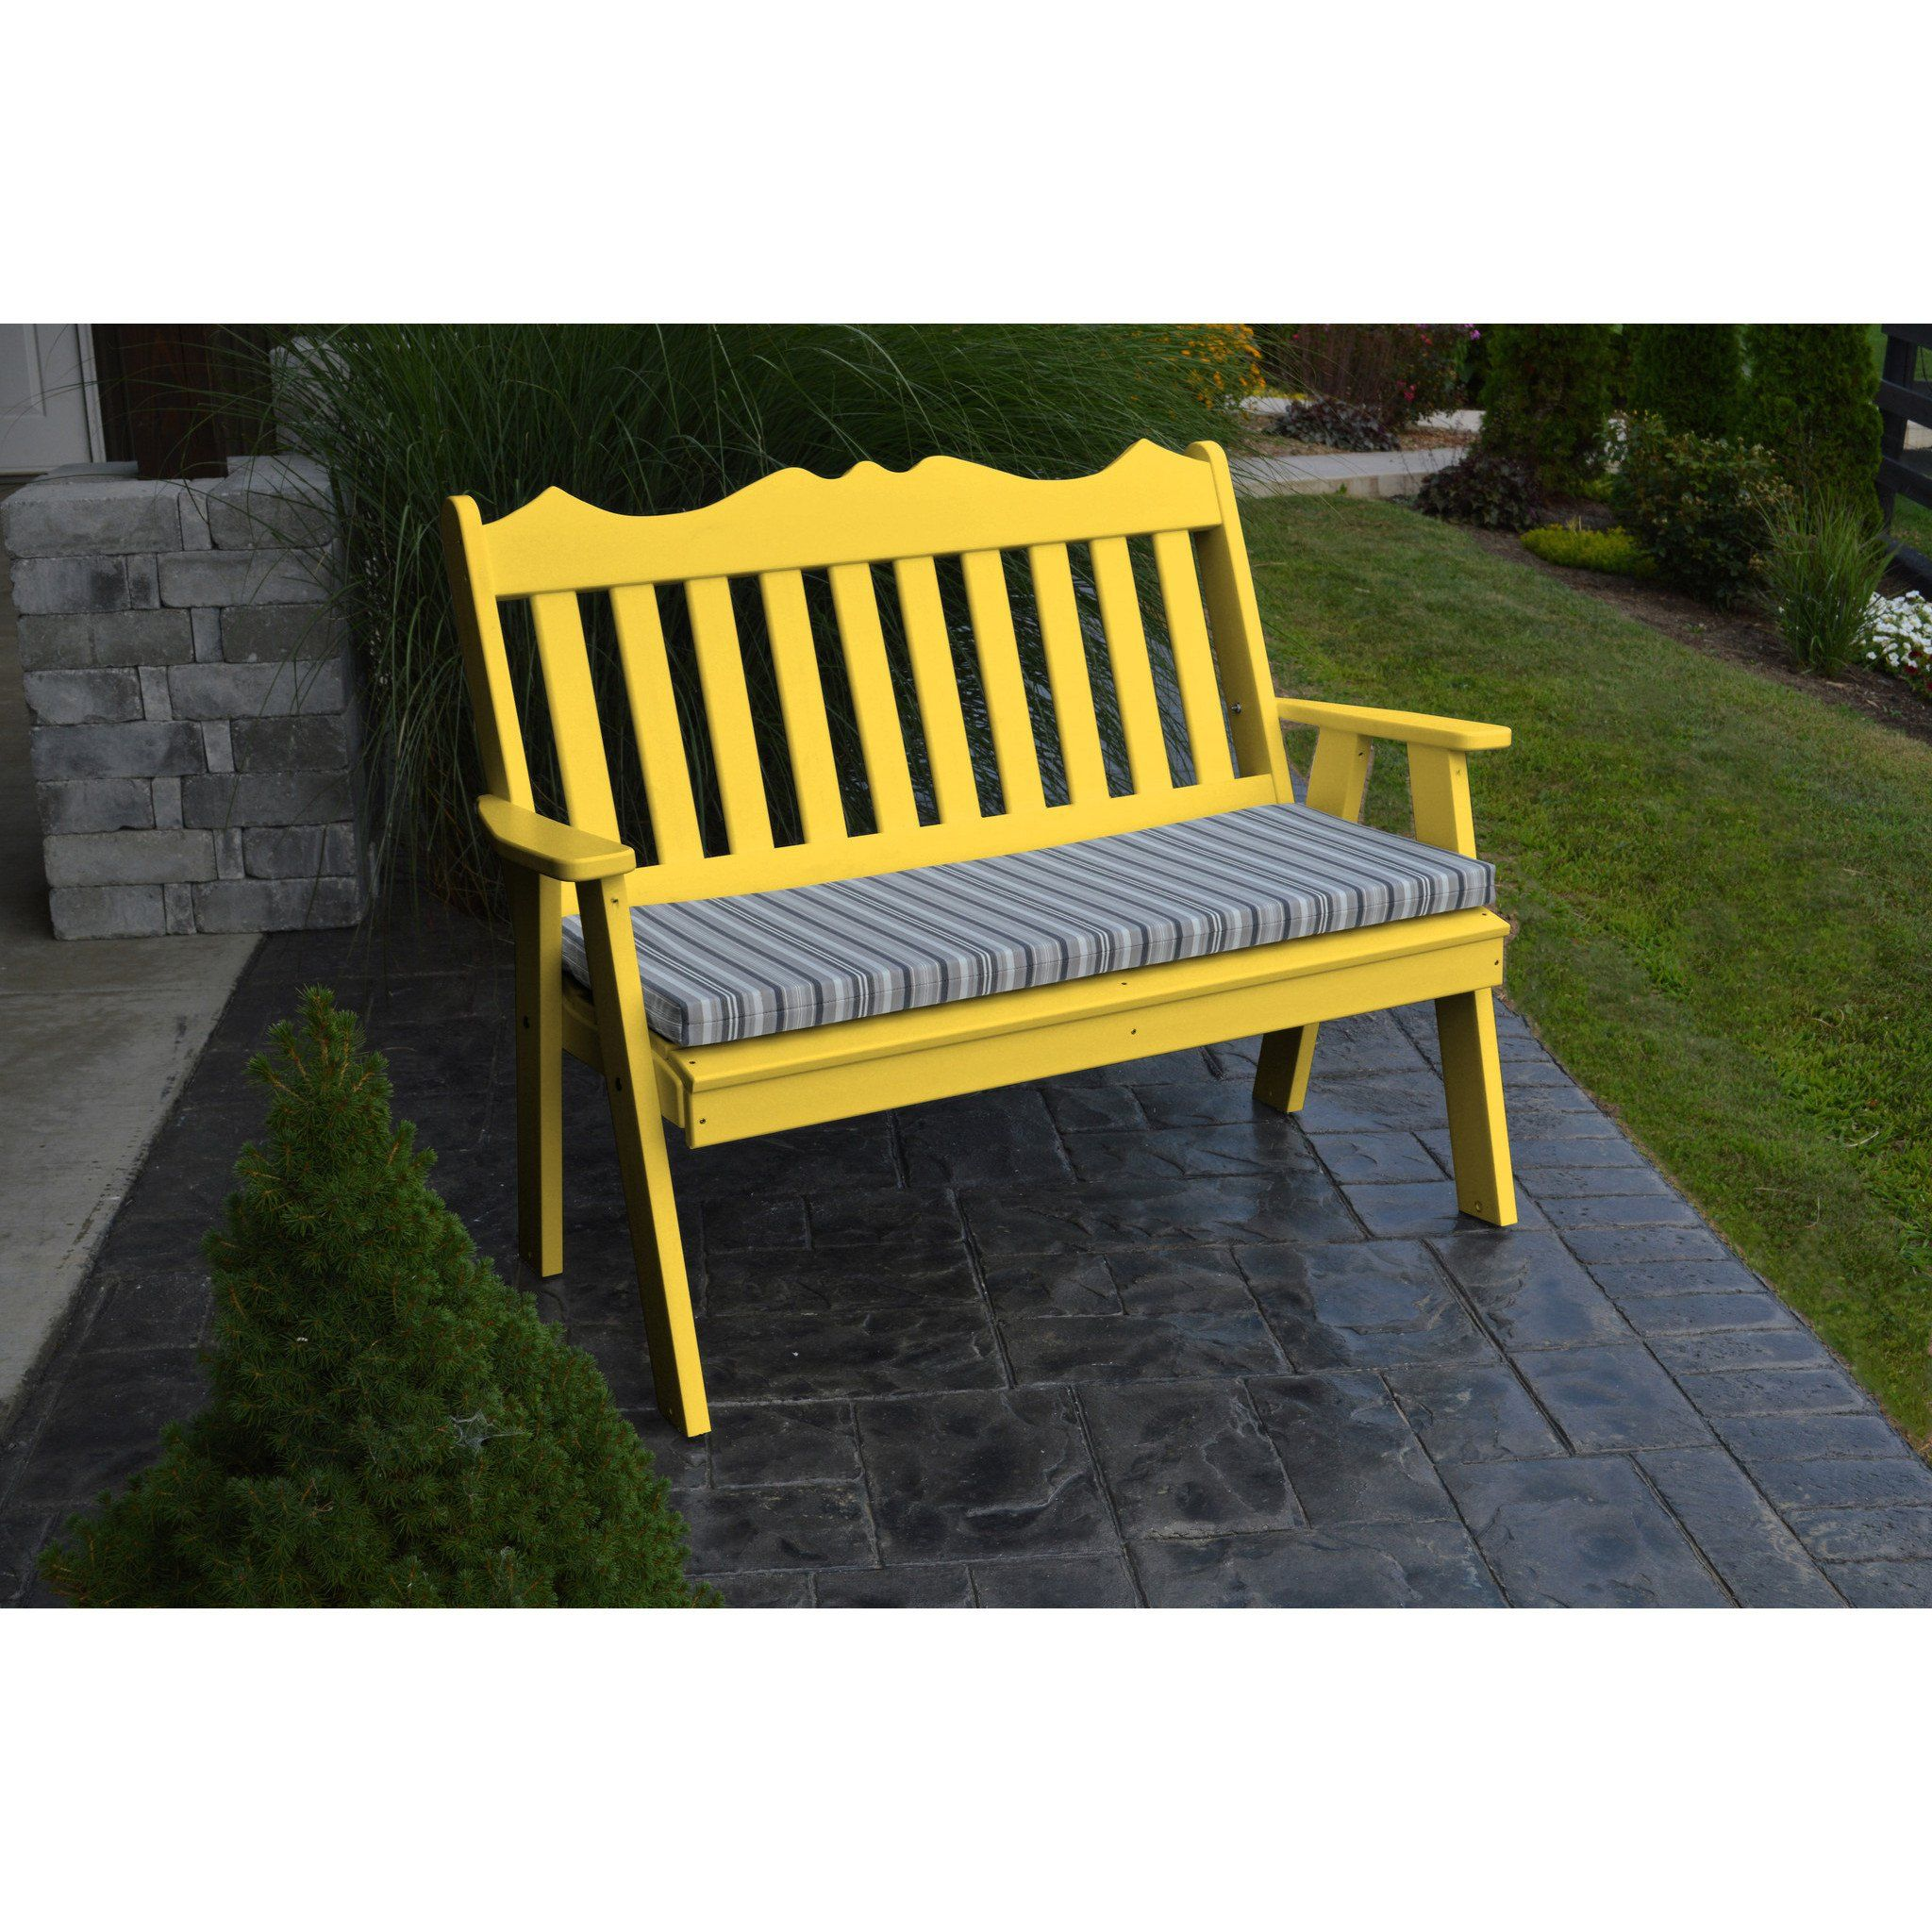 A L Furniture Company Recycled Plastic 4 Royal English Garden Bench Ships Free In 5 7 Business Days Plastic Garden Bench Outdoor Furniture Bench Gliding Chair